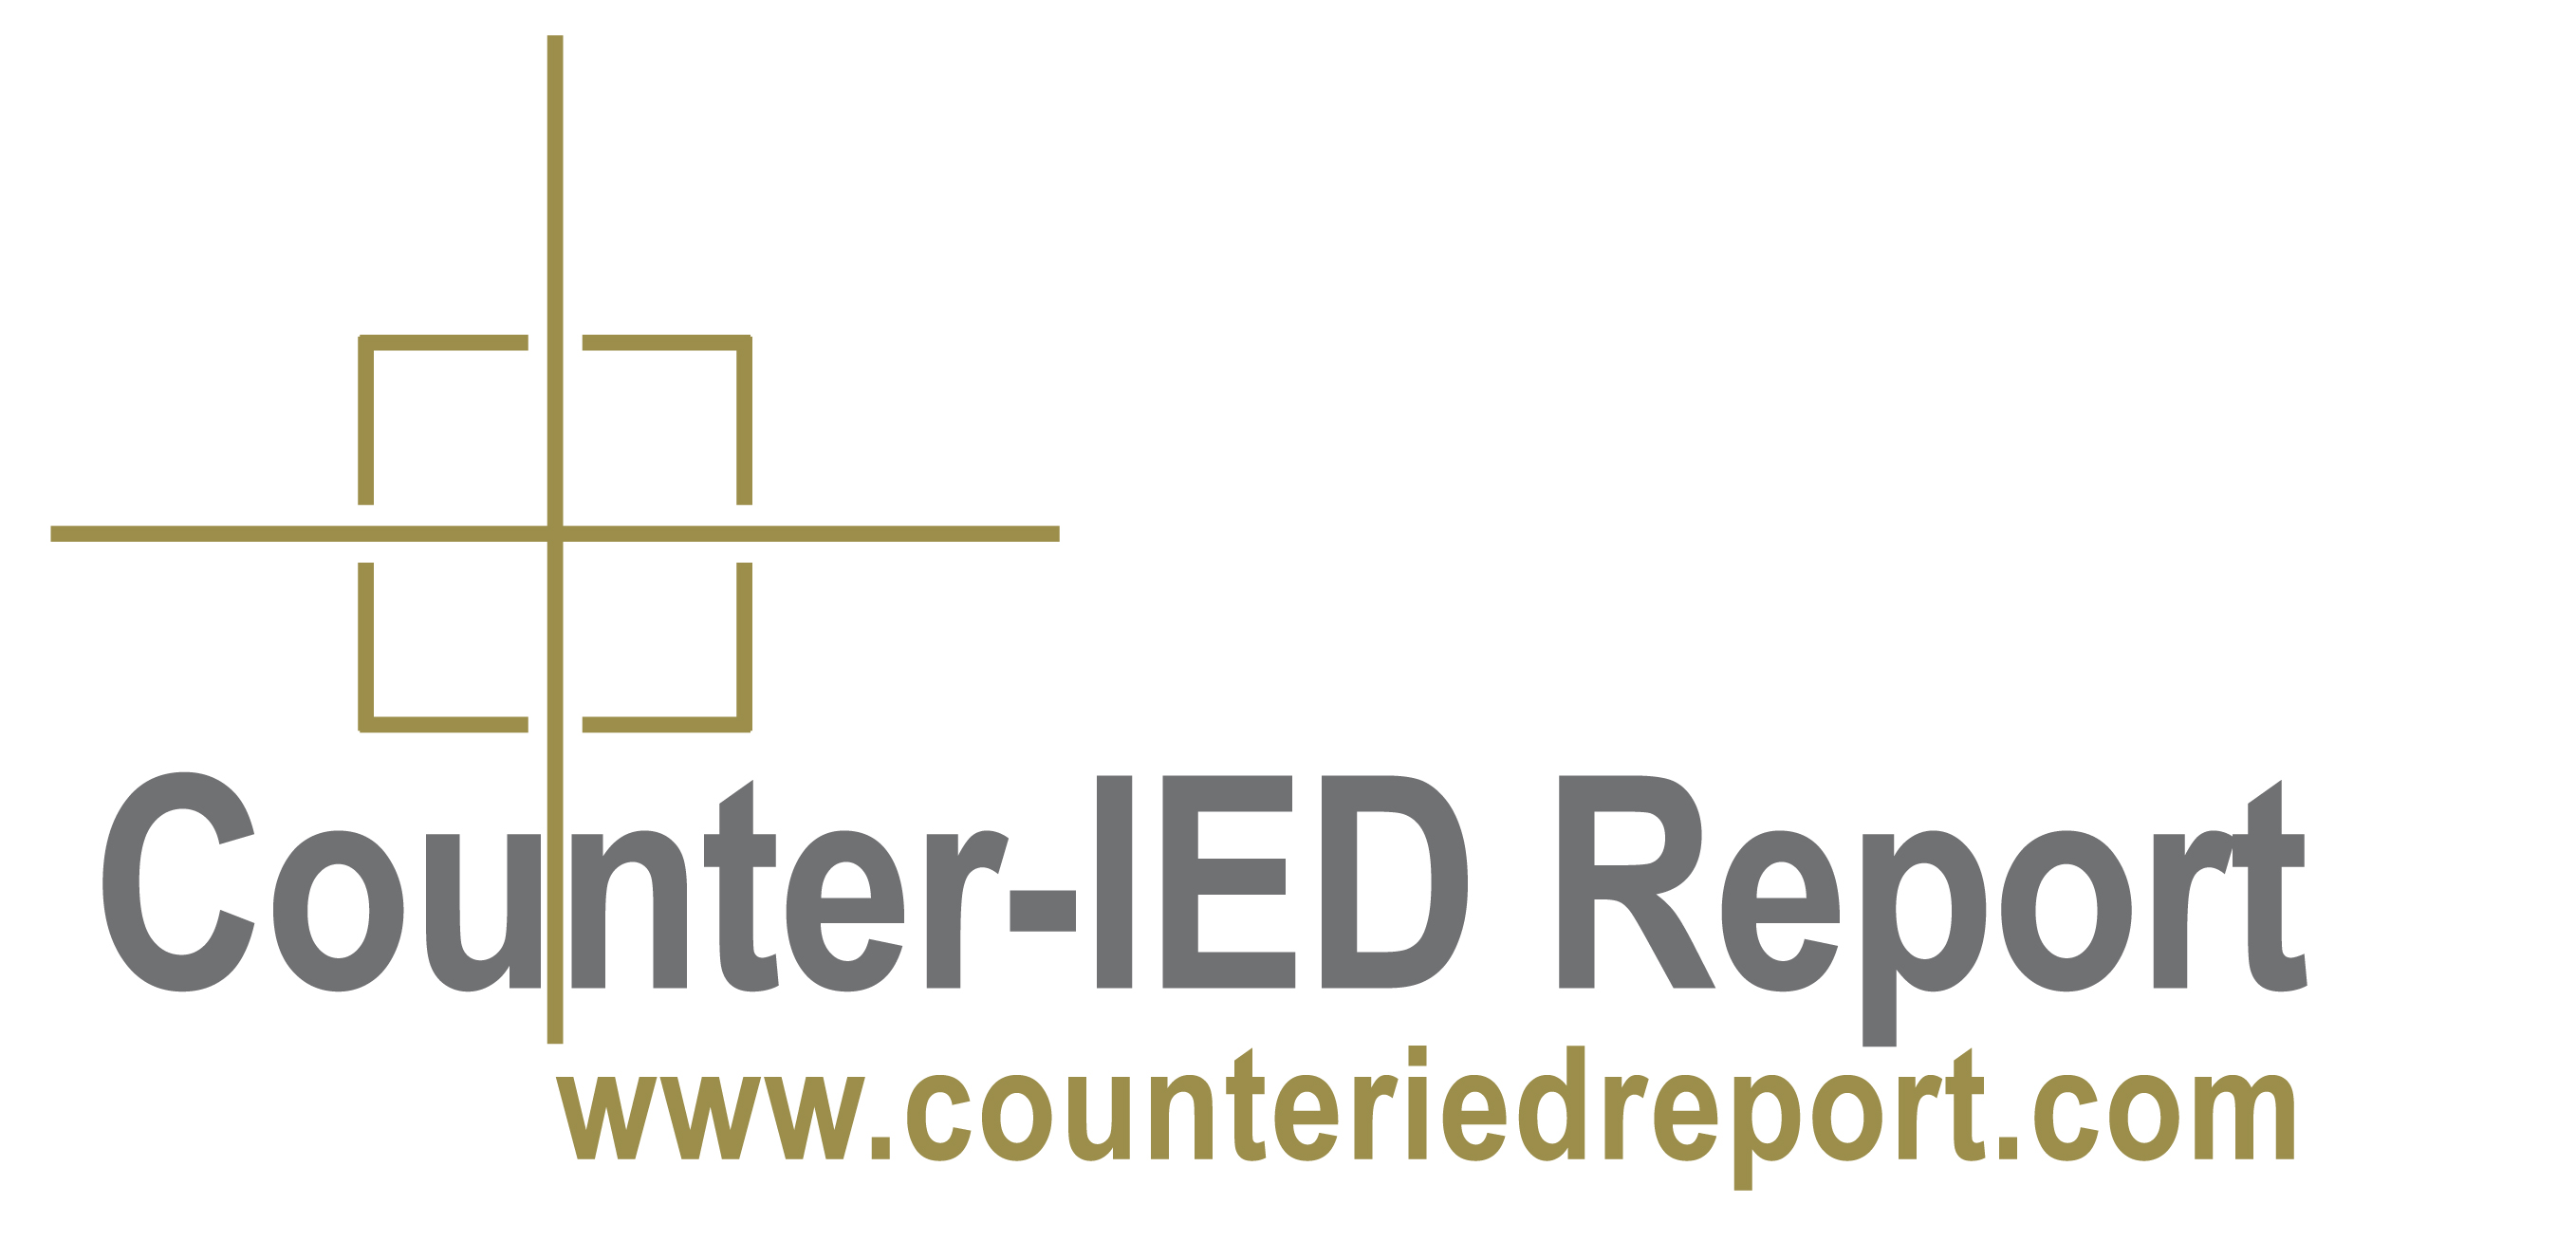 Couner-IED Report